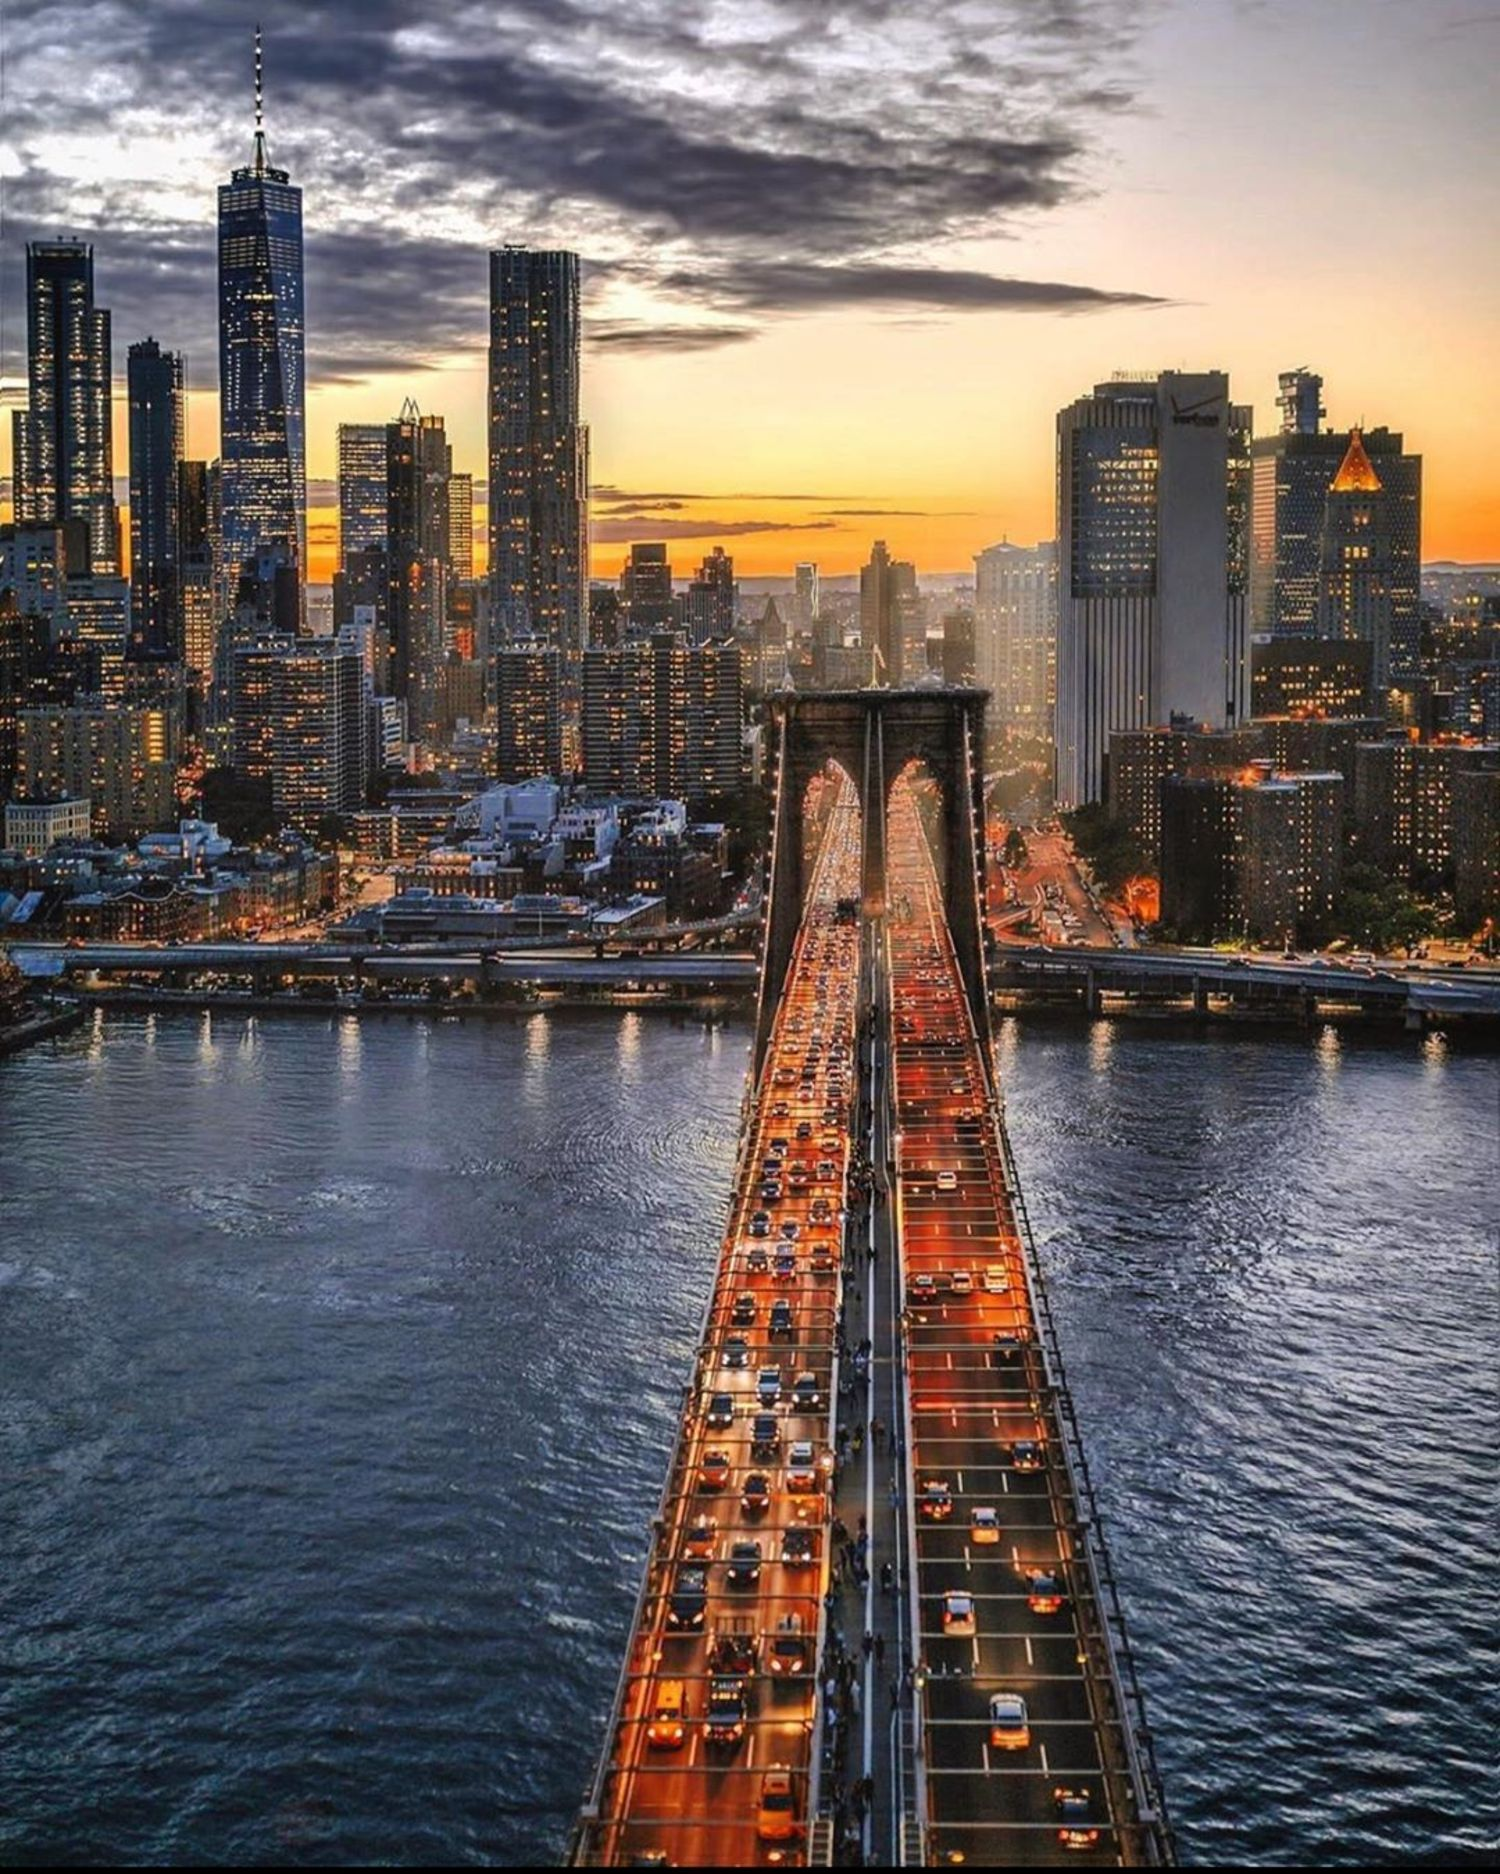 Brooklyn Bridge at Sundown, New York, New York